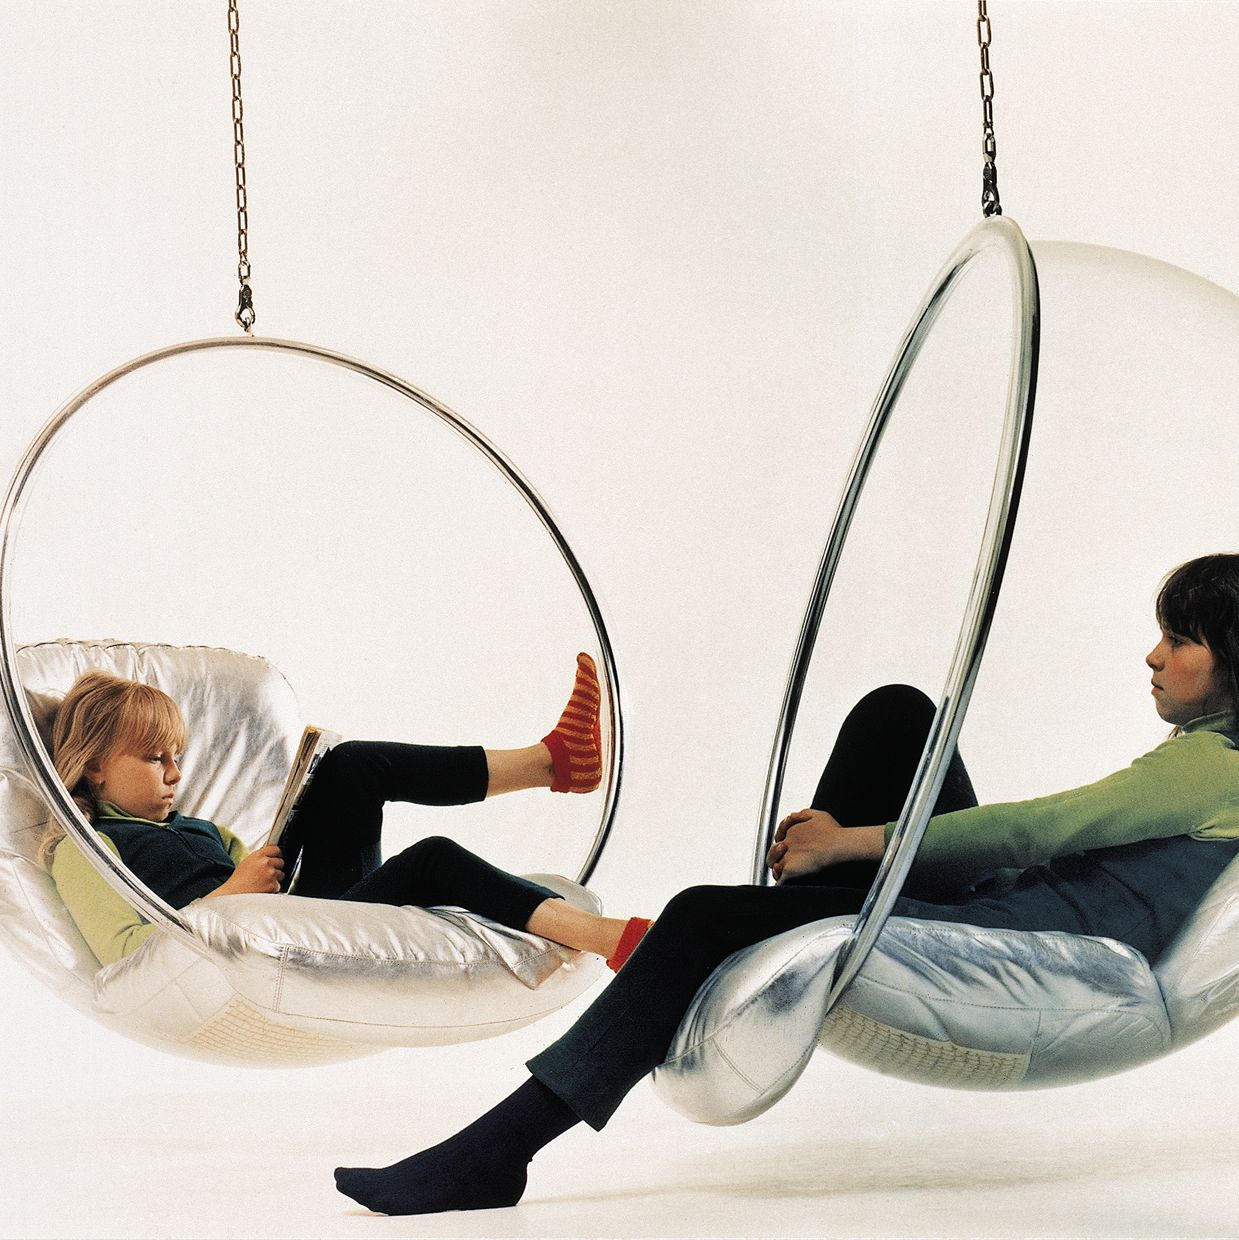 5 eero arnio - bubble chair